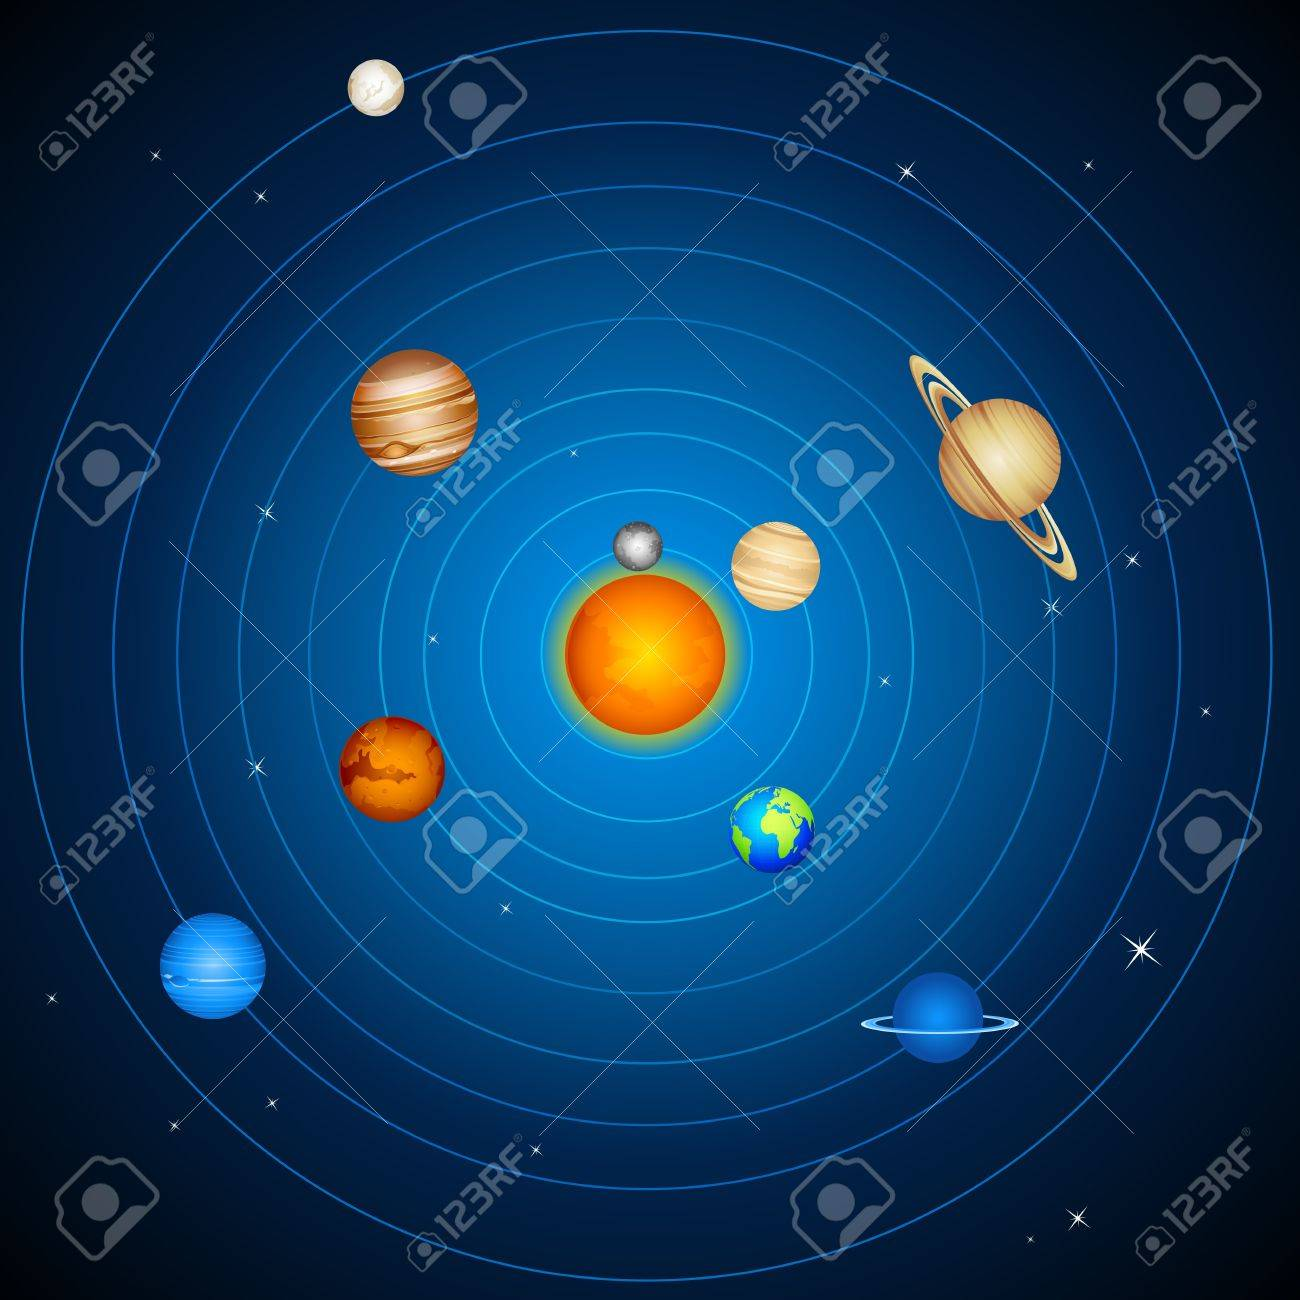 illustration of planets with sun and moon in solar system - 17945469